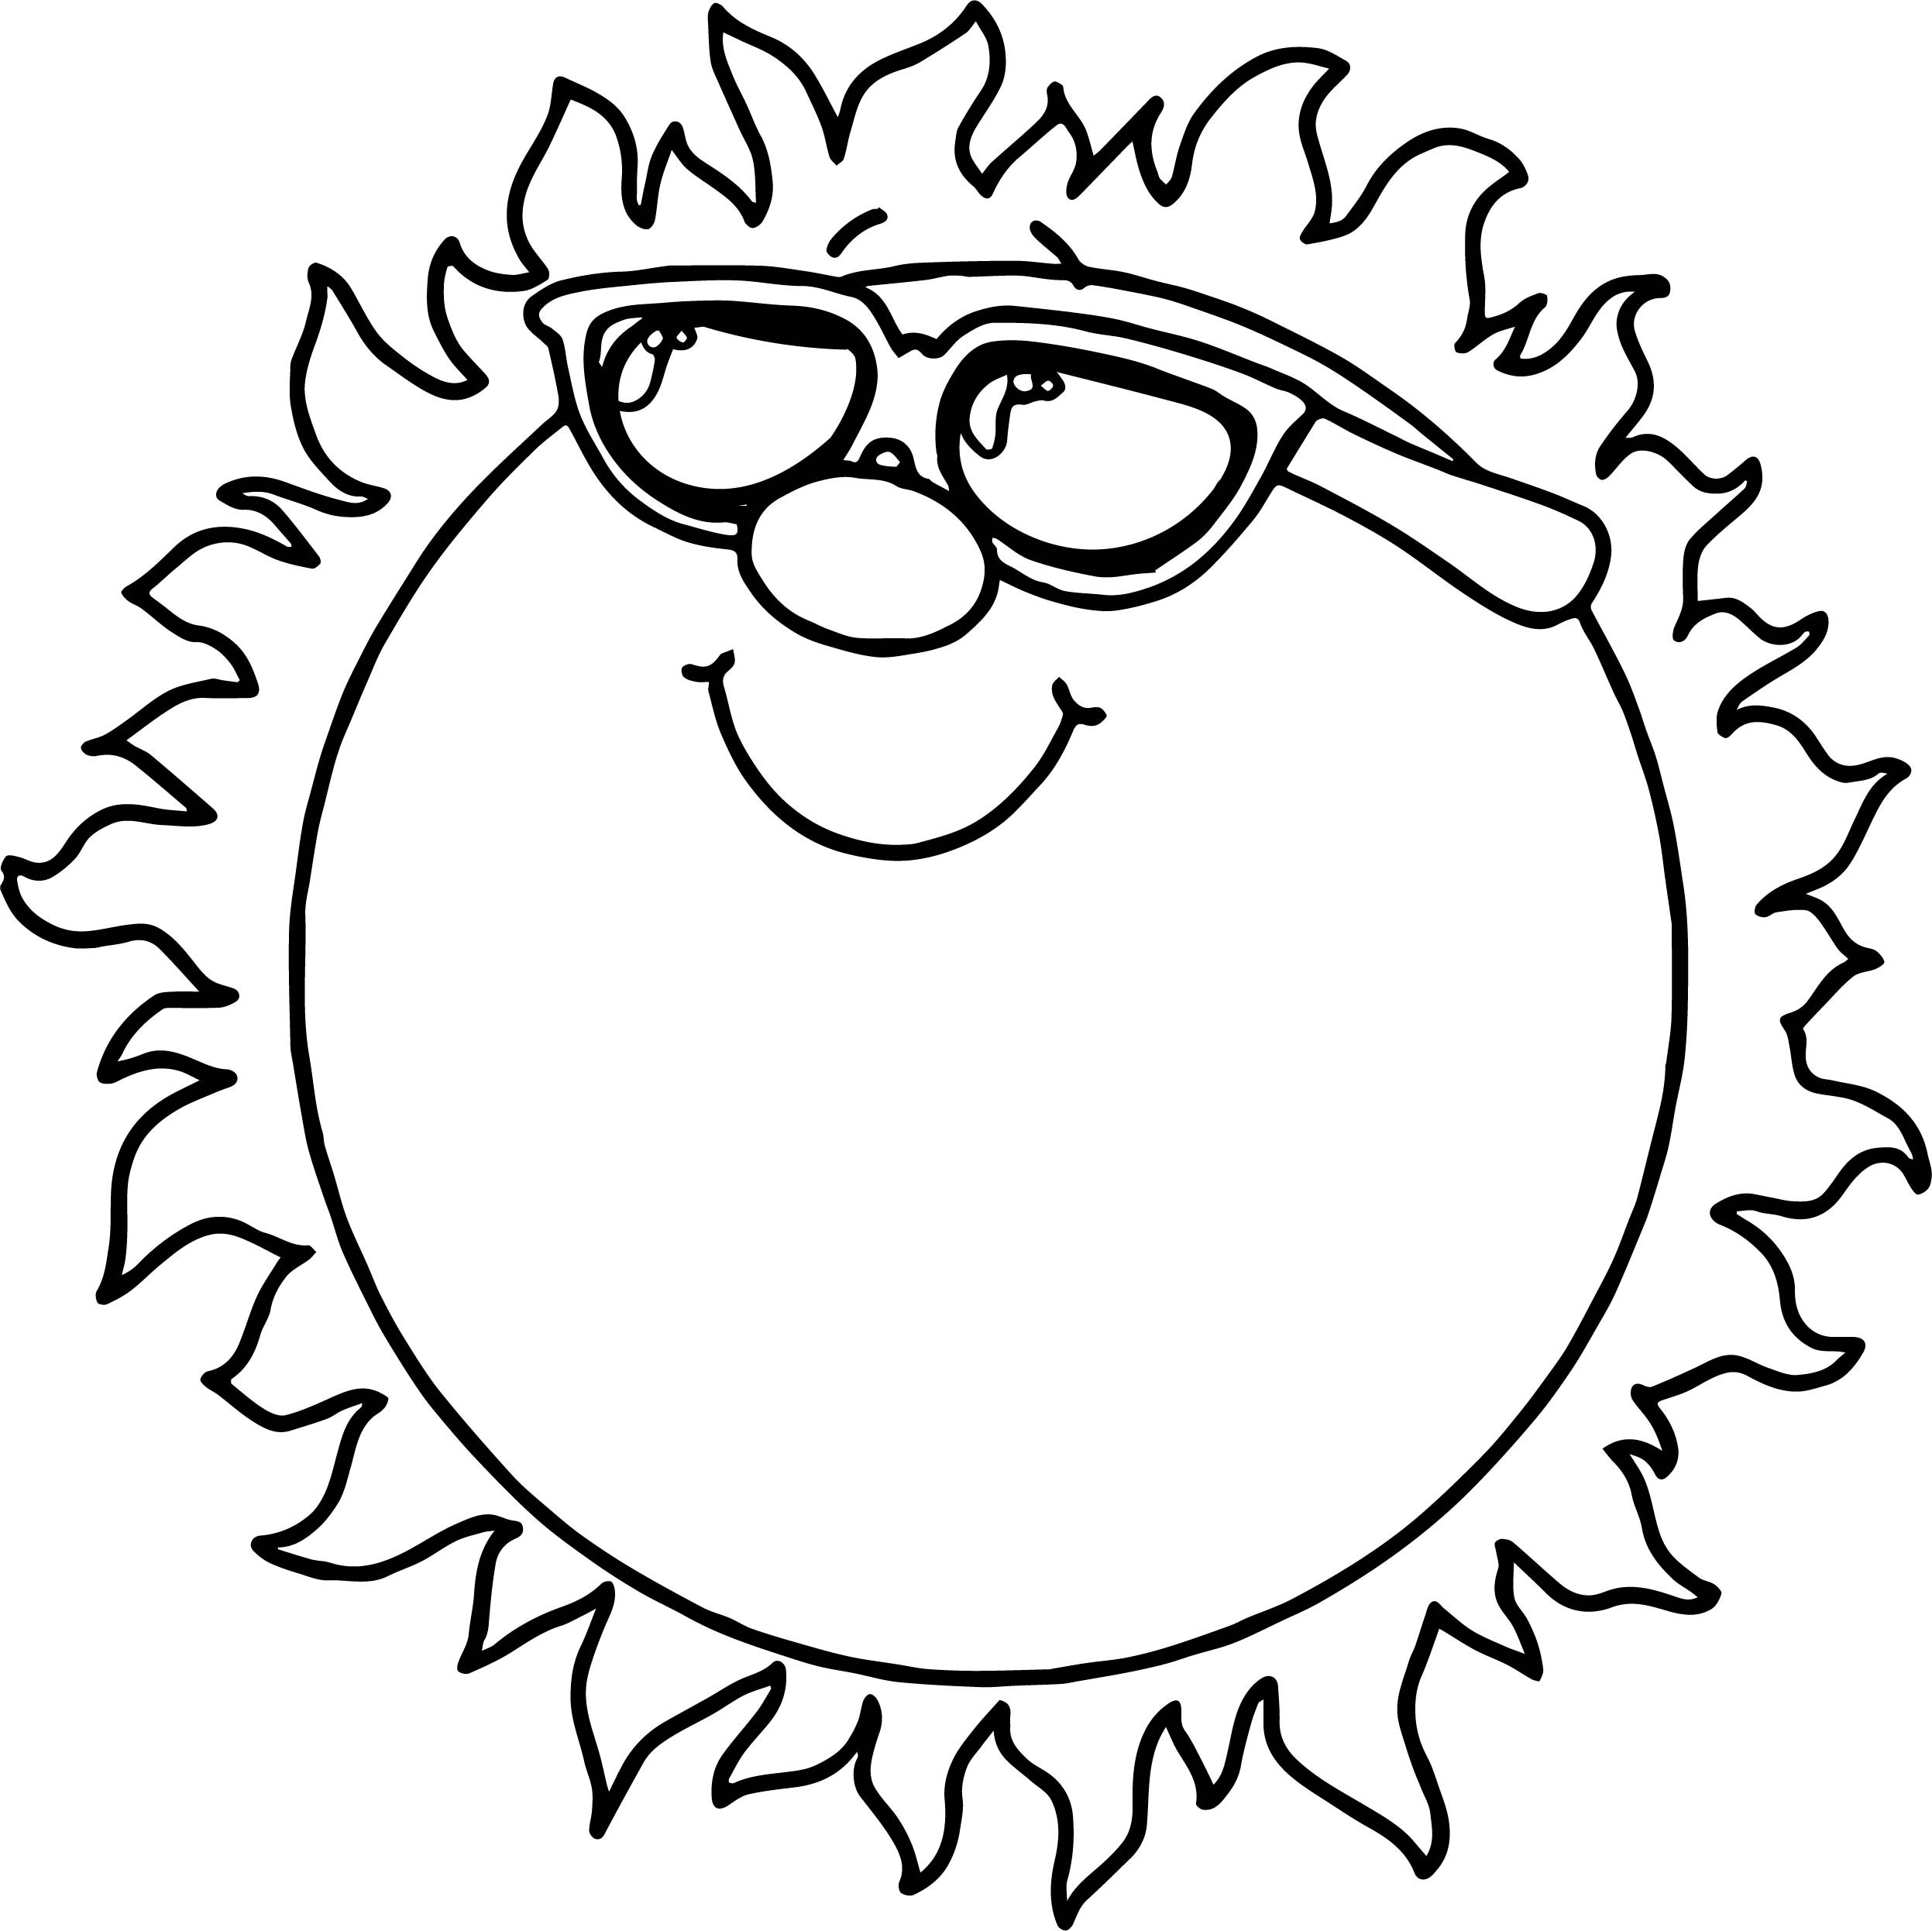 2494x2493 Sun Coloring Pages Summer With For Kids Luxury Free Printable Sun